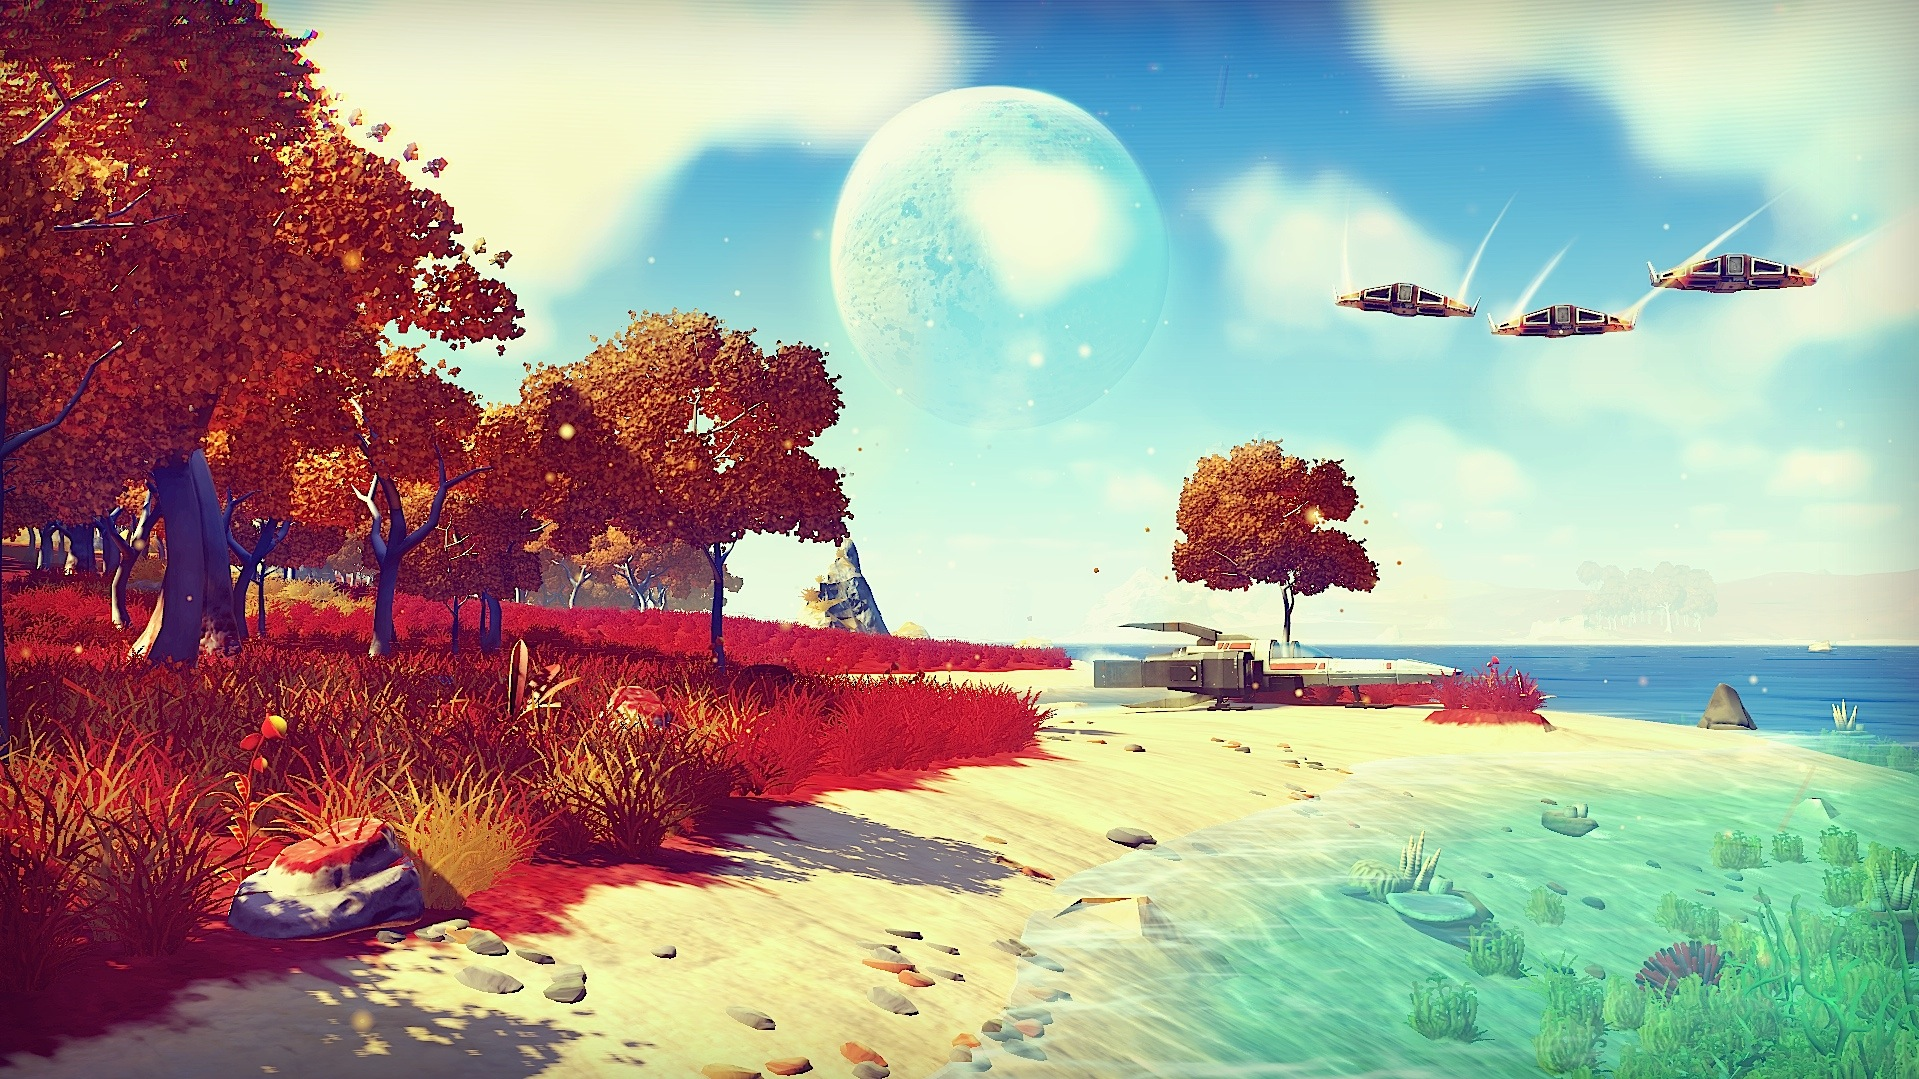 Check out this interview with Hello Games on No Man's Sky!